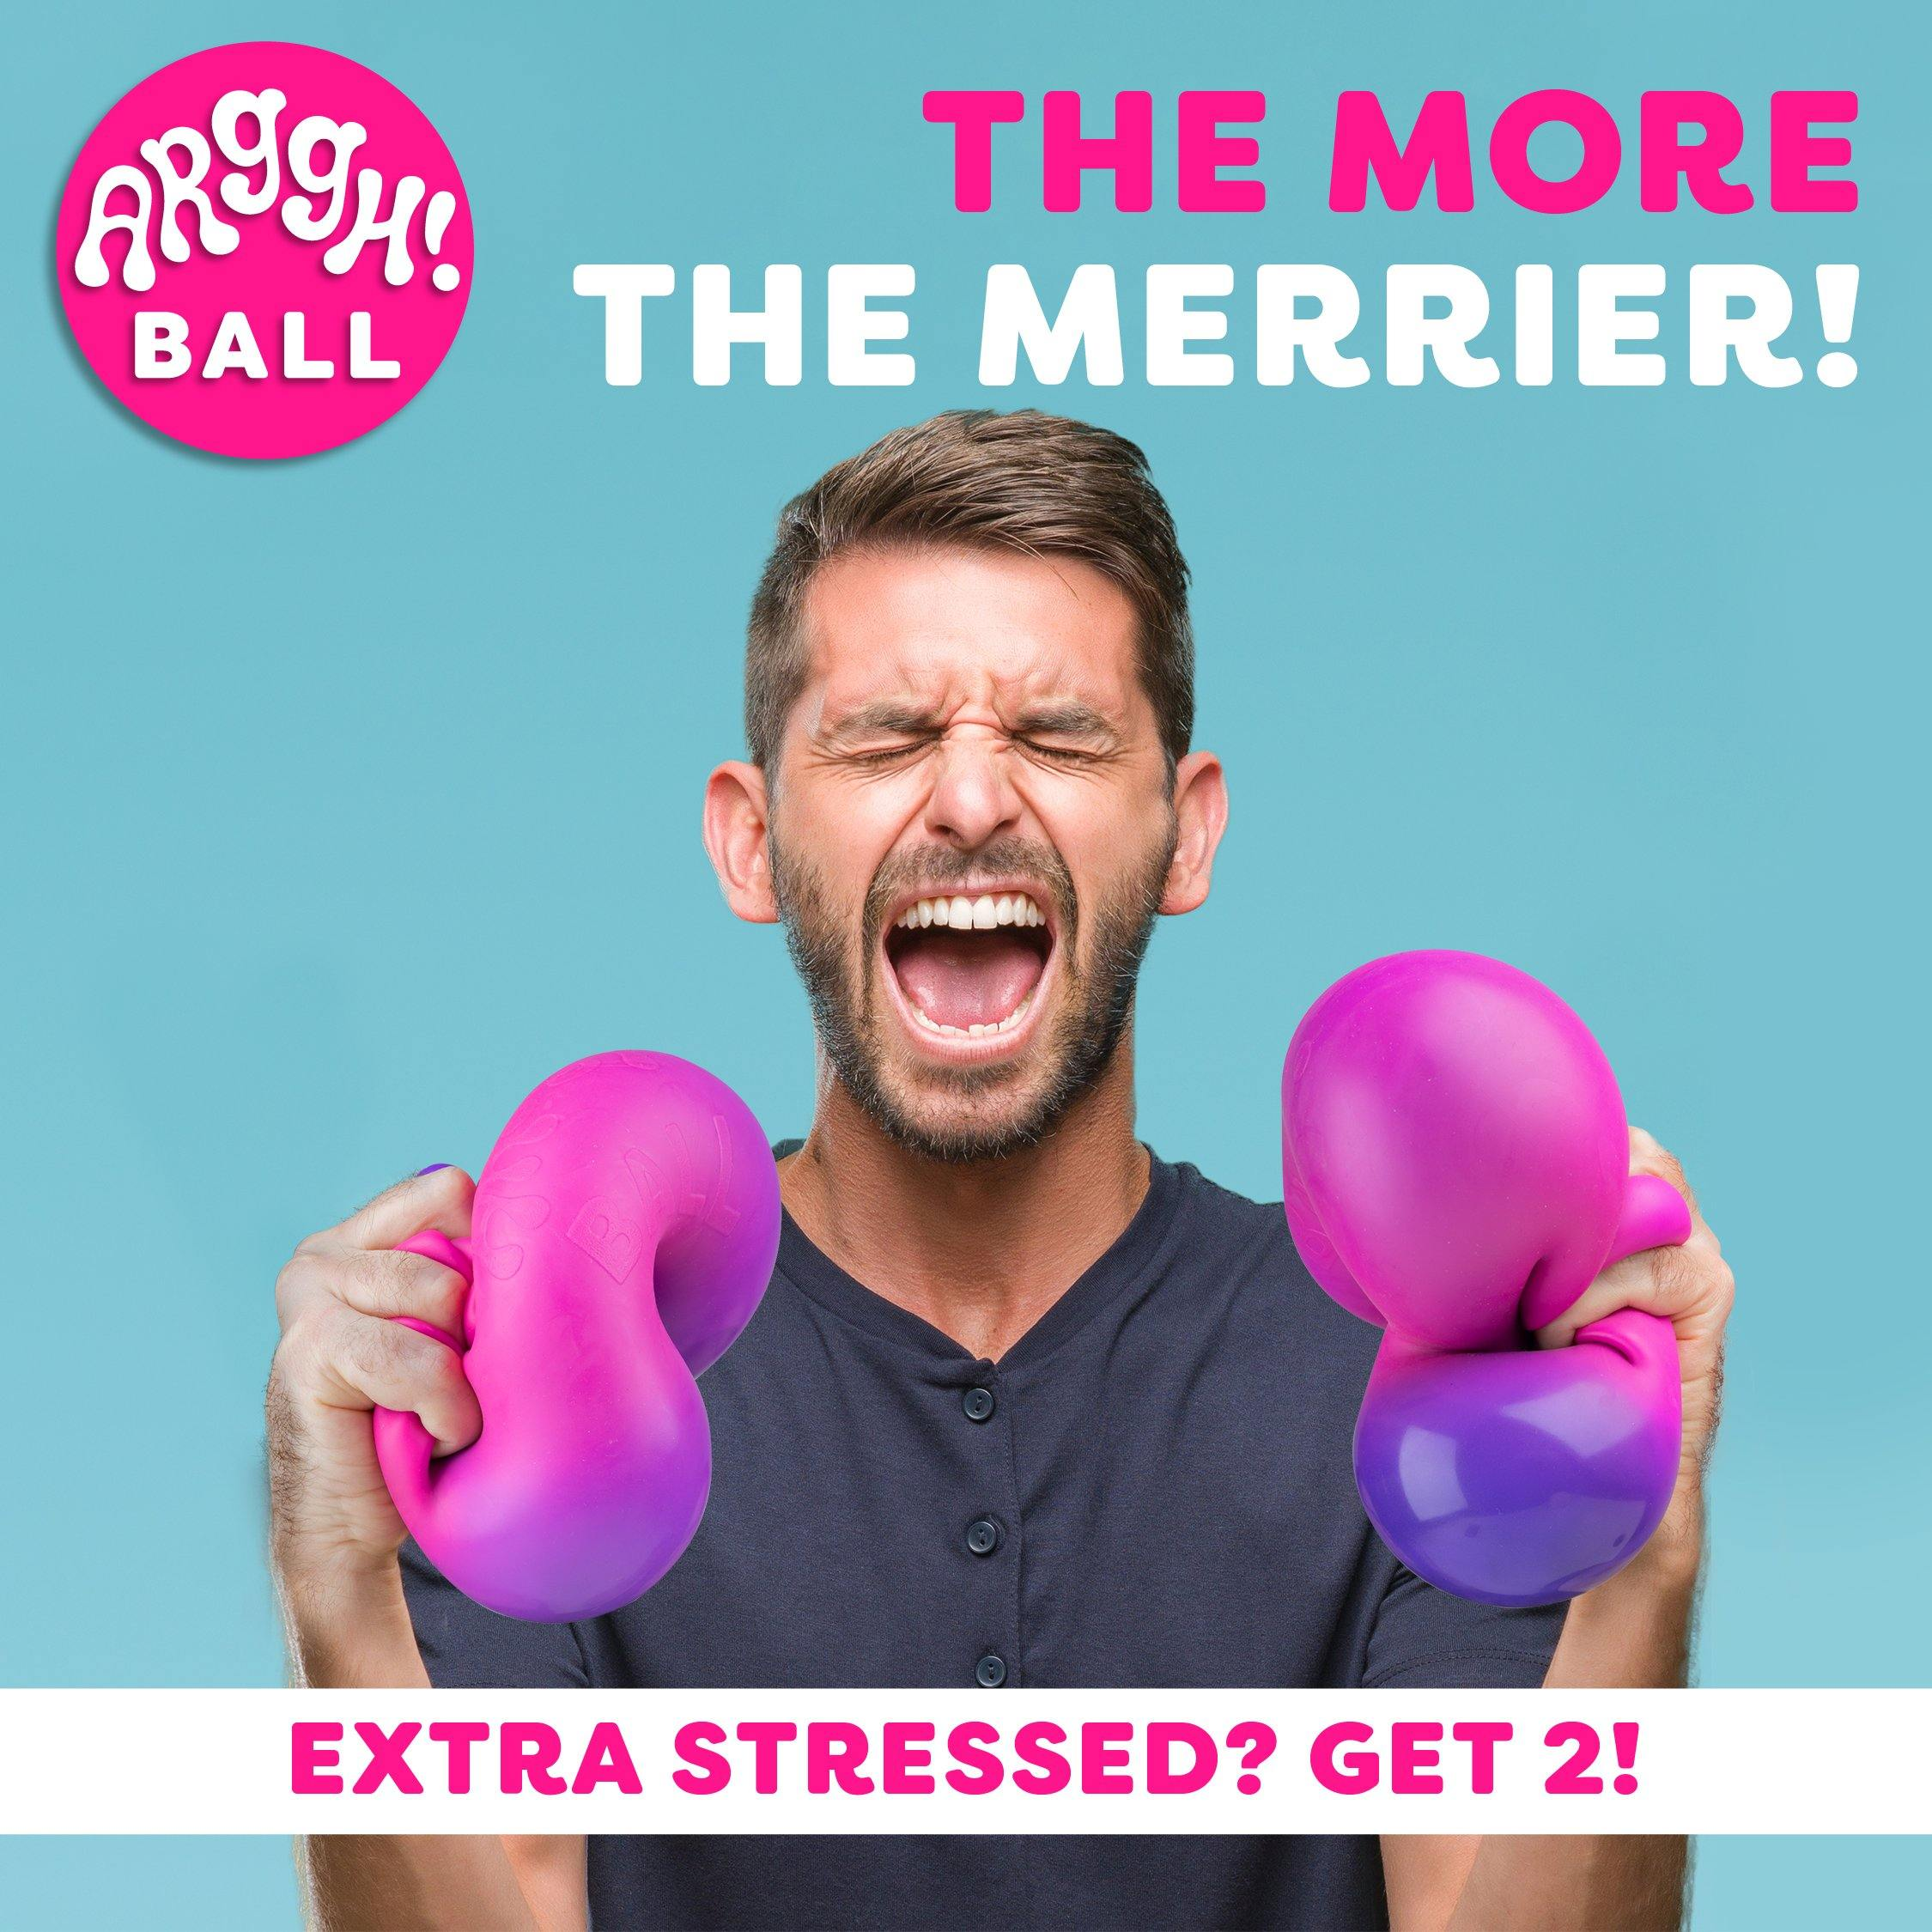 Arggh! Ball Jumbo Color-Changing Stress Ball - (Yellow-Orange / Pink-Purple) - poweryourfun